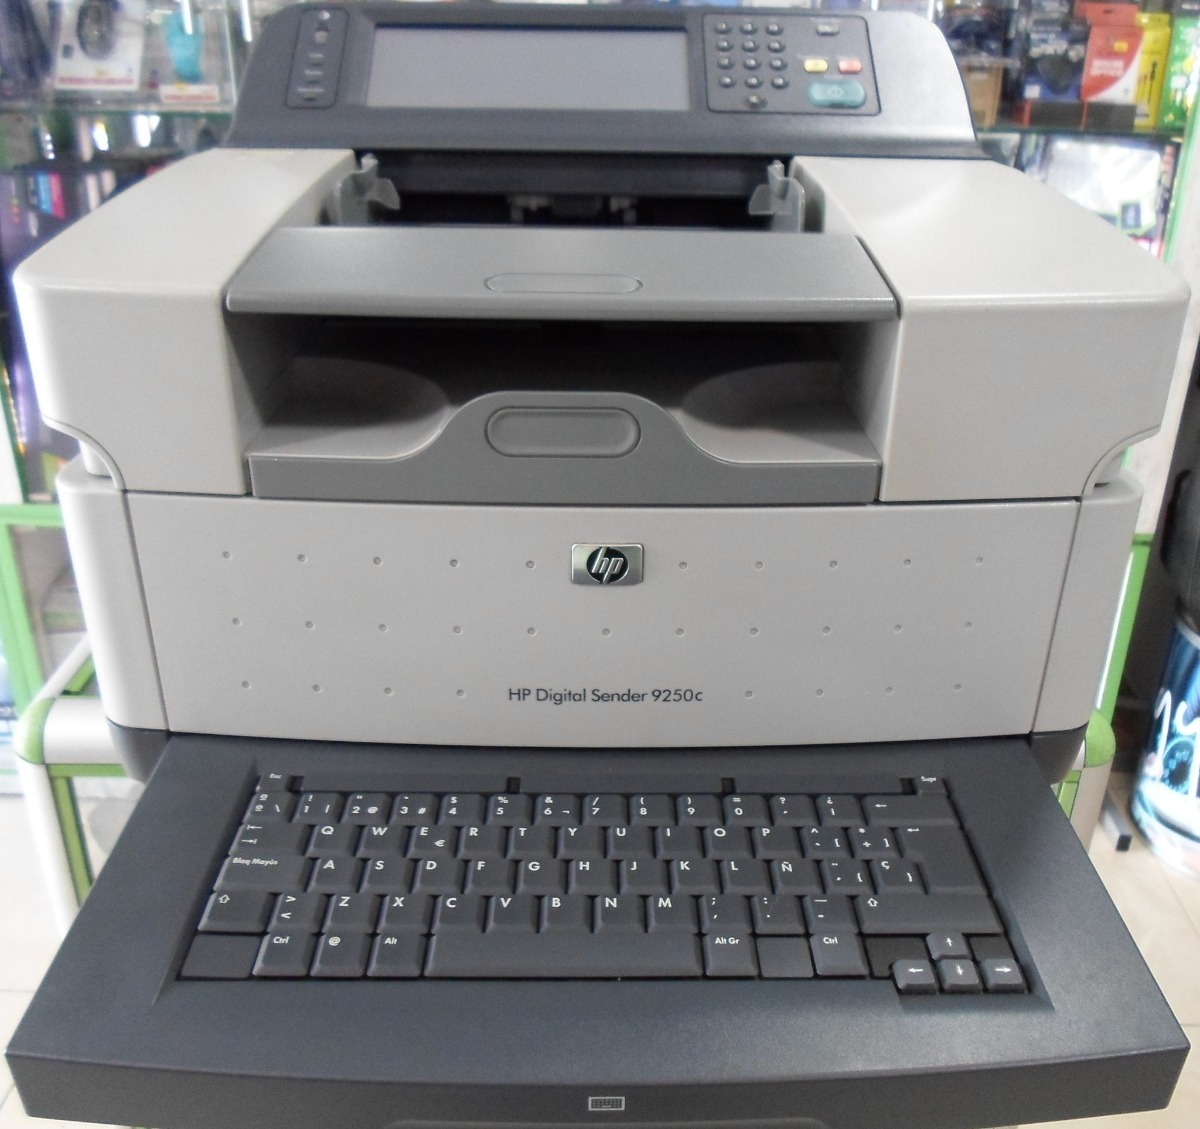 HP 9250C TWAIN DRIVER DOWNLOAD FREE